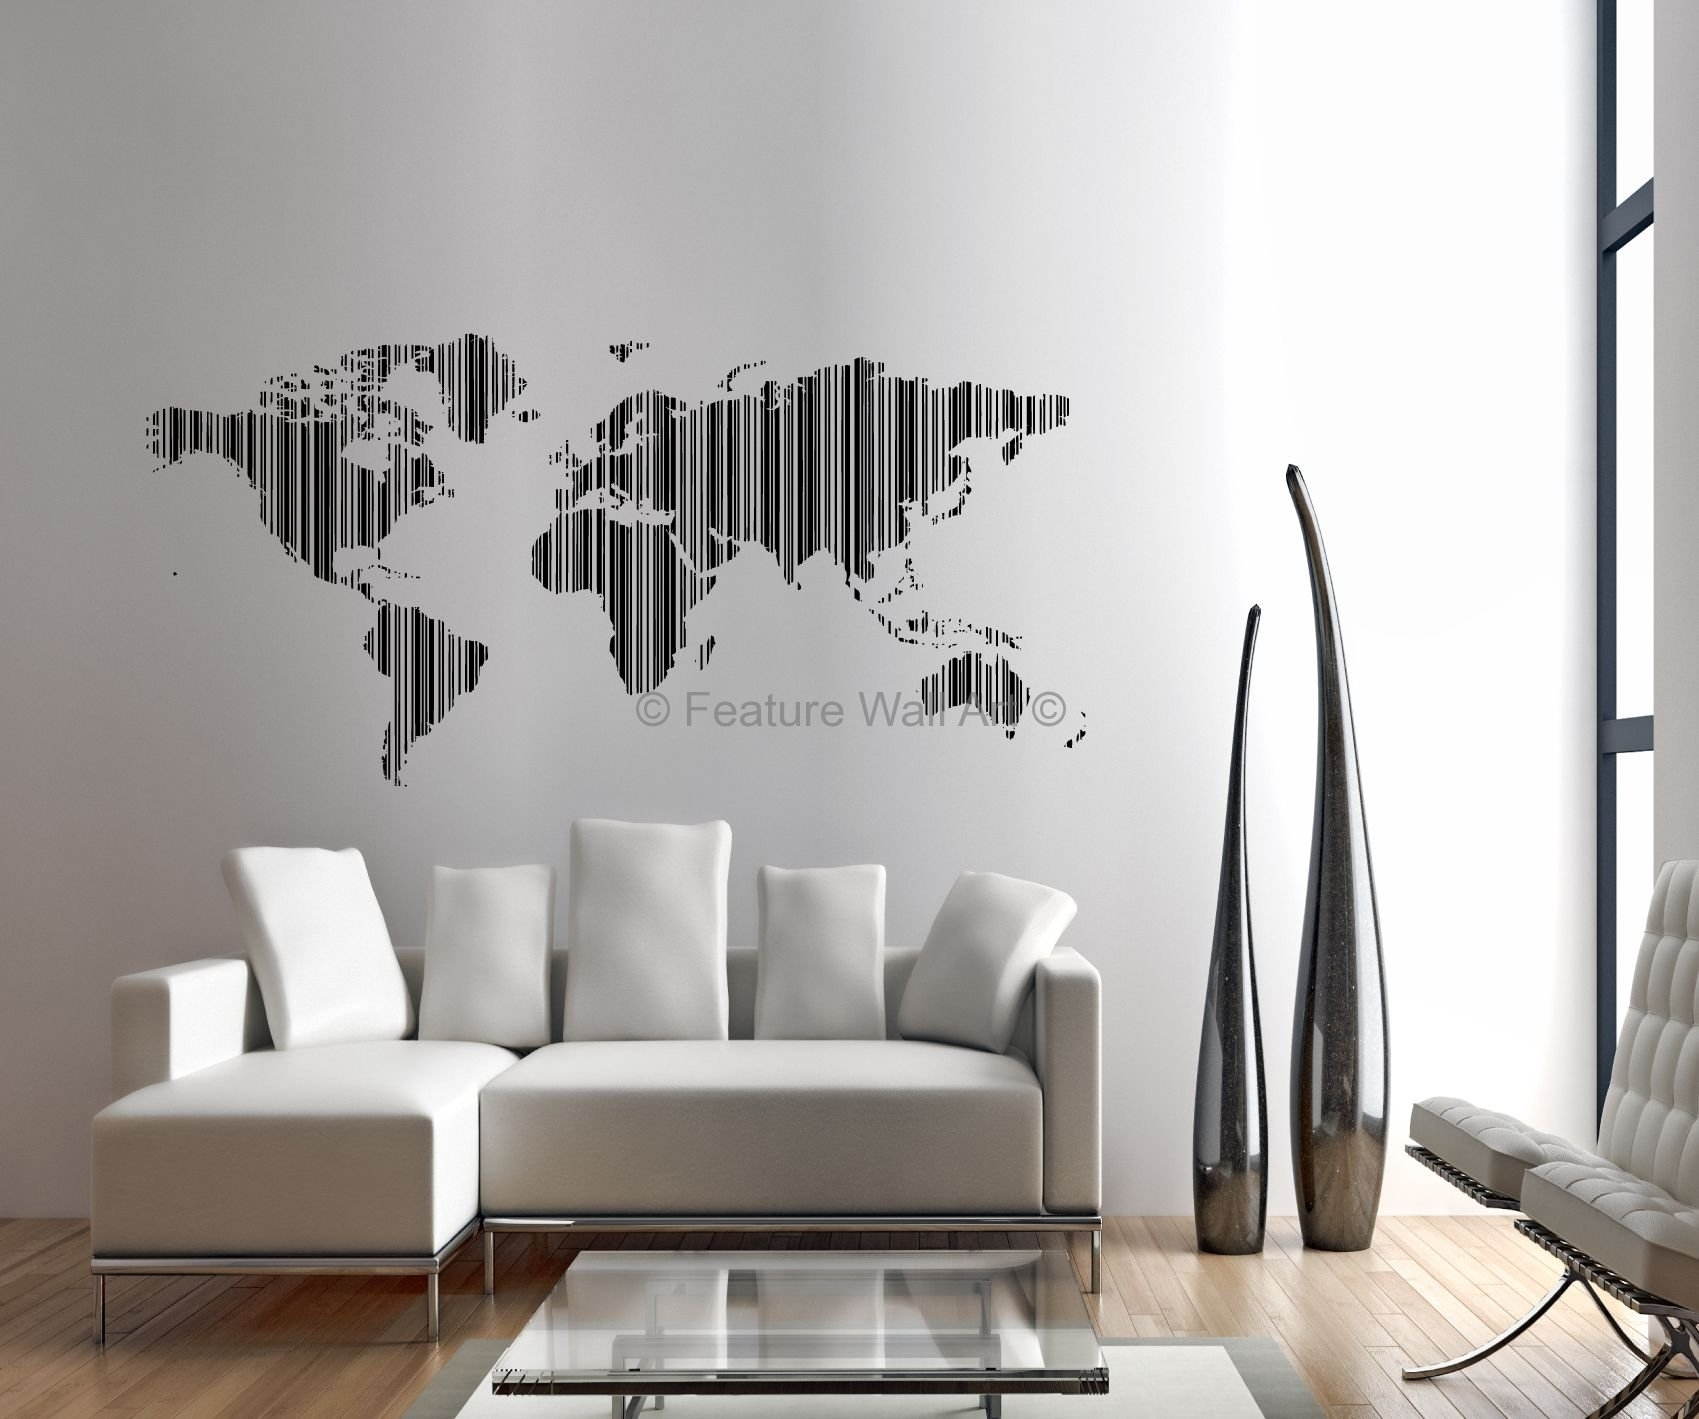 Unique Wall Art Ideas Com Trends Including Unusual Inspirations intended for Unusual Wall Art (Image 9 of 20)